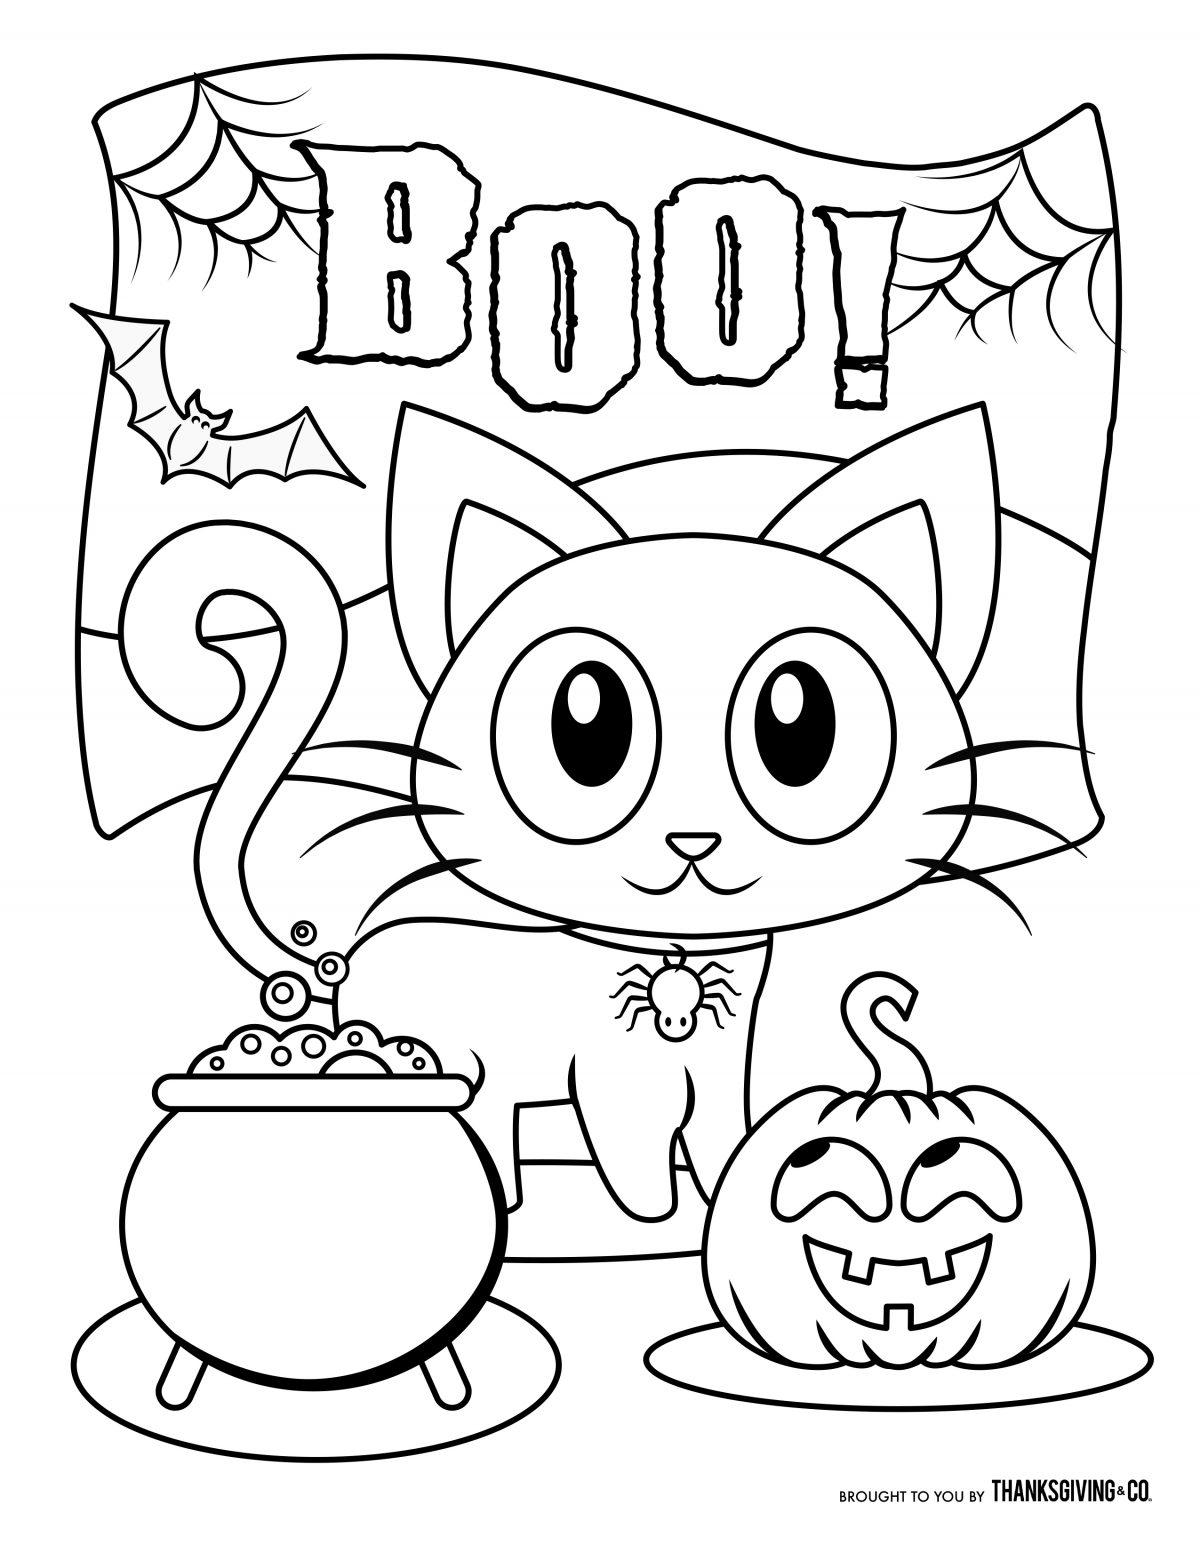 Halloween Coloring Page Free Halloween Coloring Pages For Kids Or For The  Kid In You - birijus.com